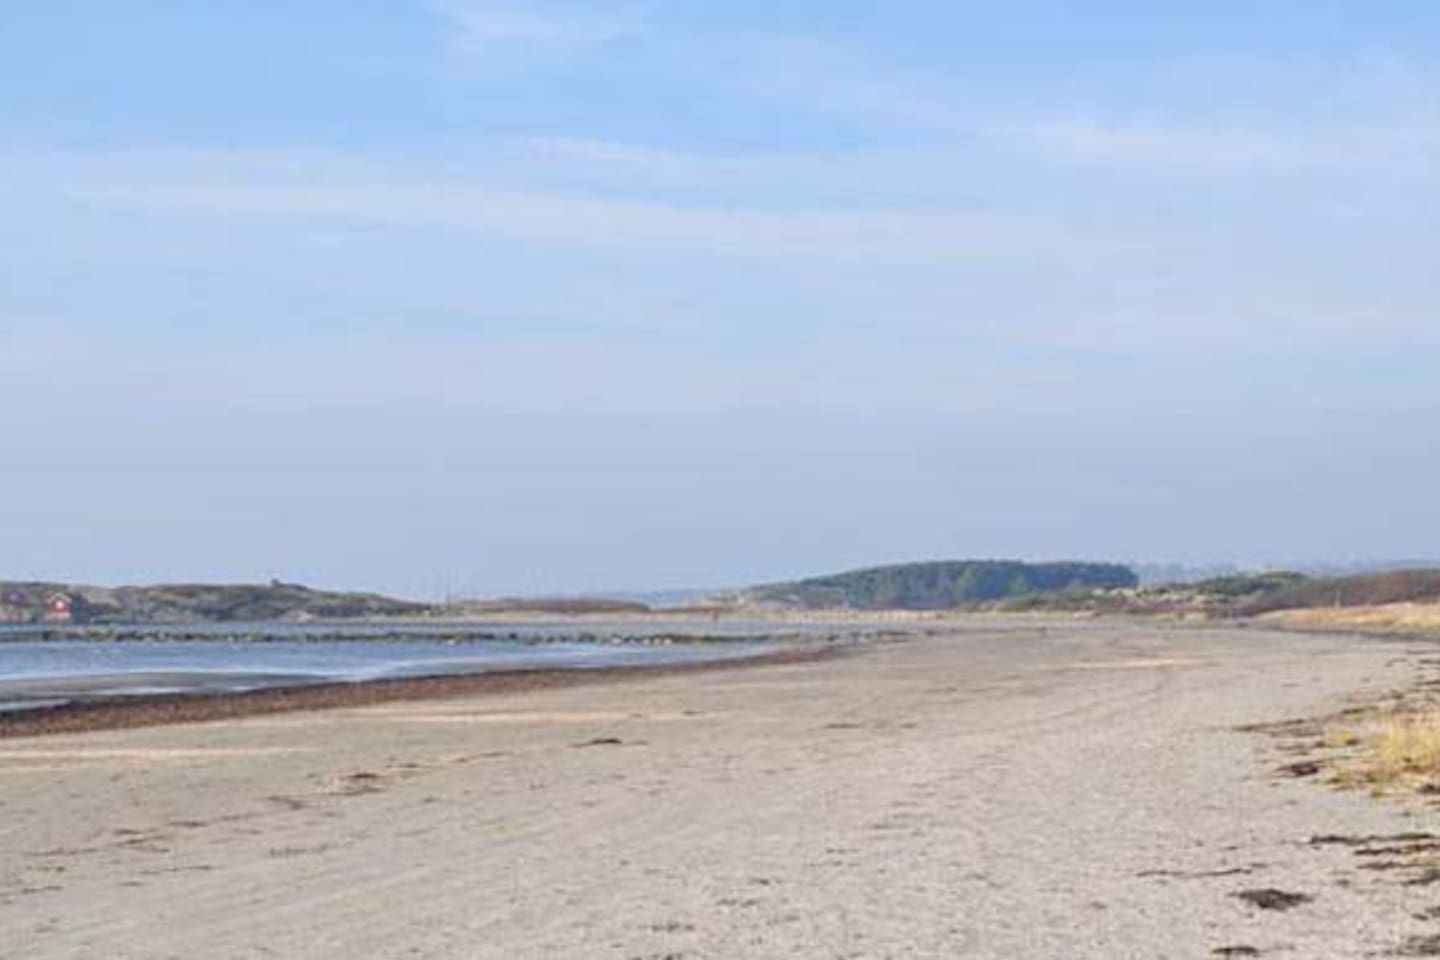 The long and child friendly beach in Långasand